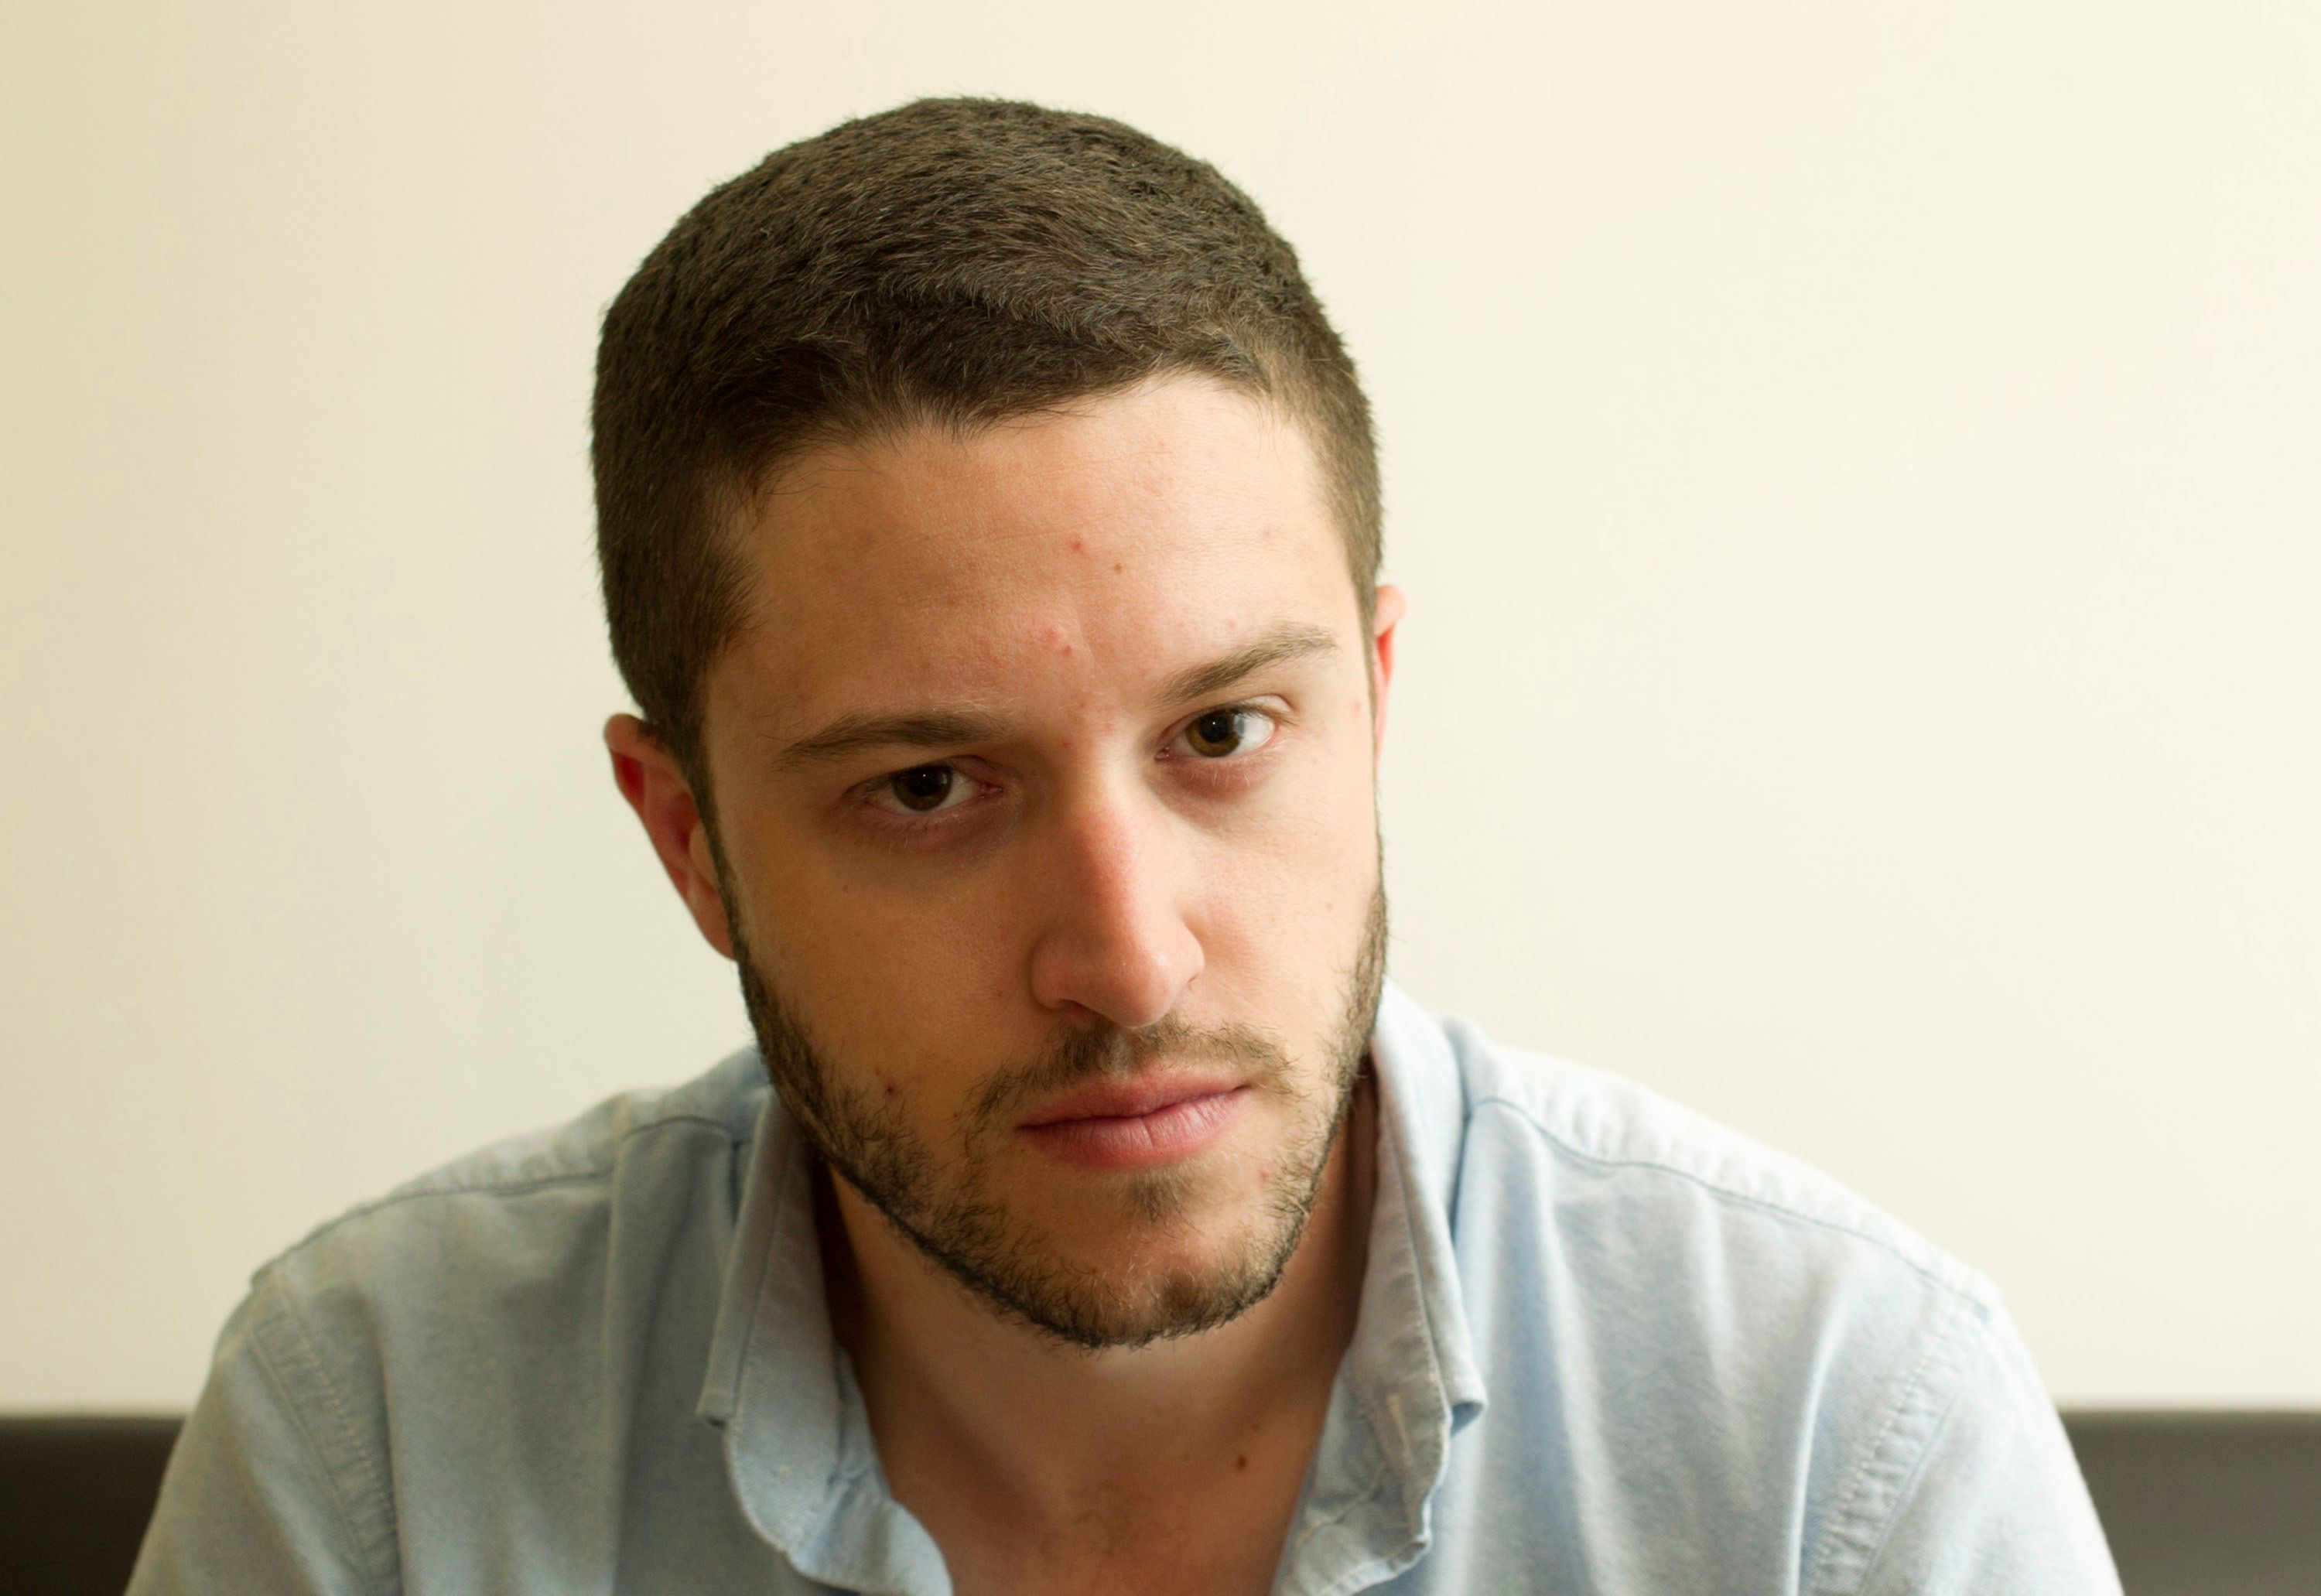 Cody Wilson made the first completely 3D-printed handgun, The Liberator, at his home in Austin, Texas on Friday May 10, 2013. (Photo by Jay Janner/Austin American-State/TNS/Sipa USA)